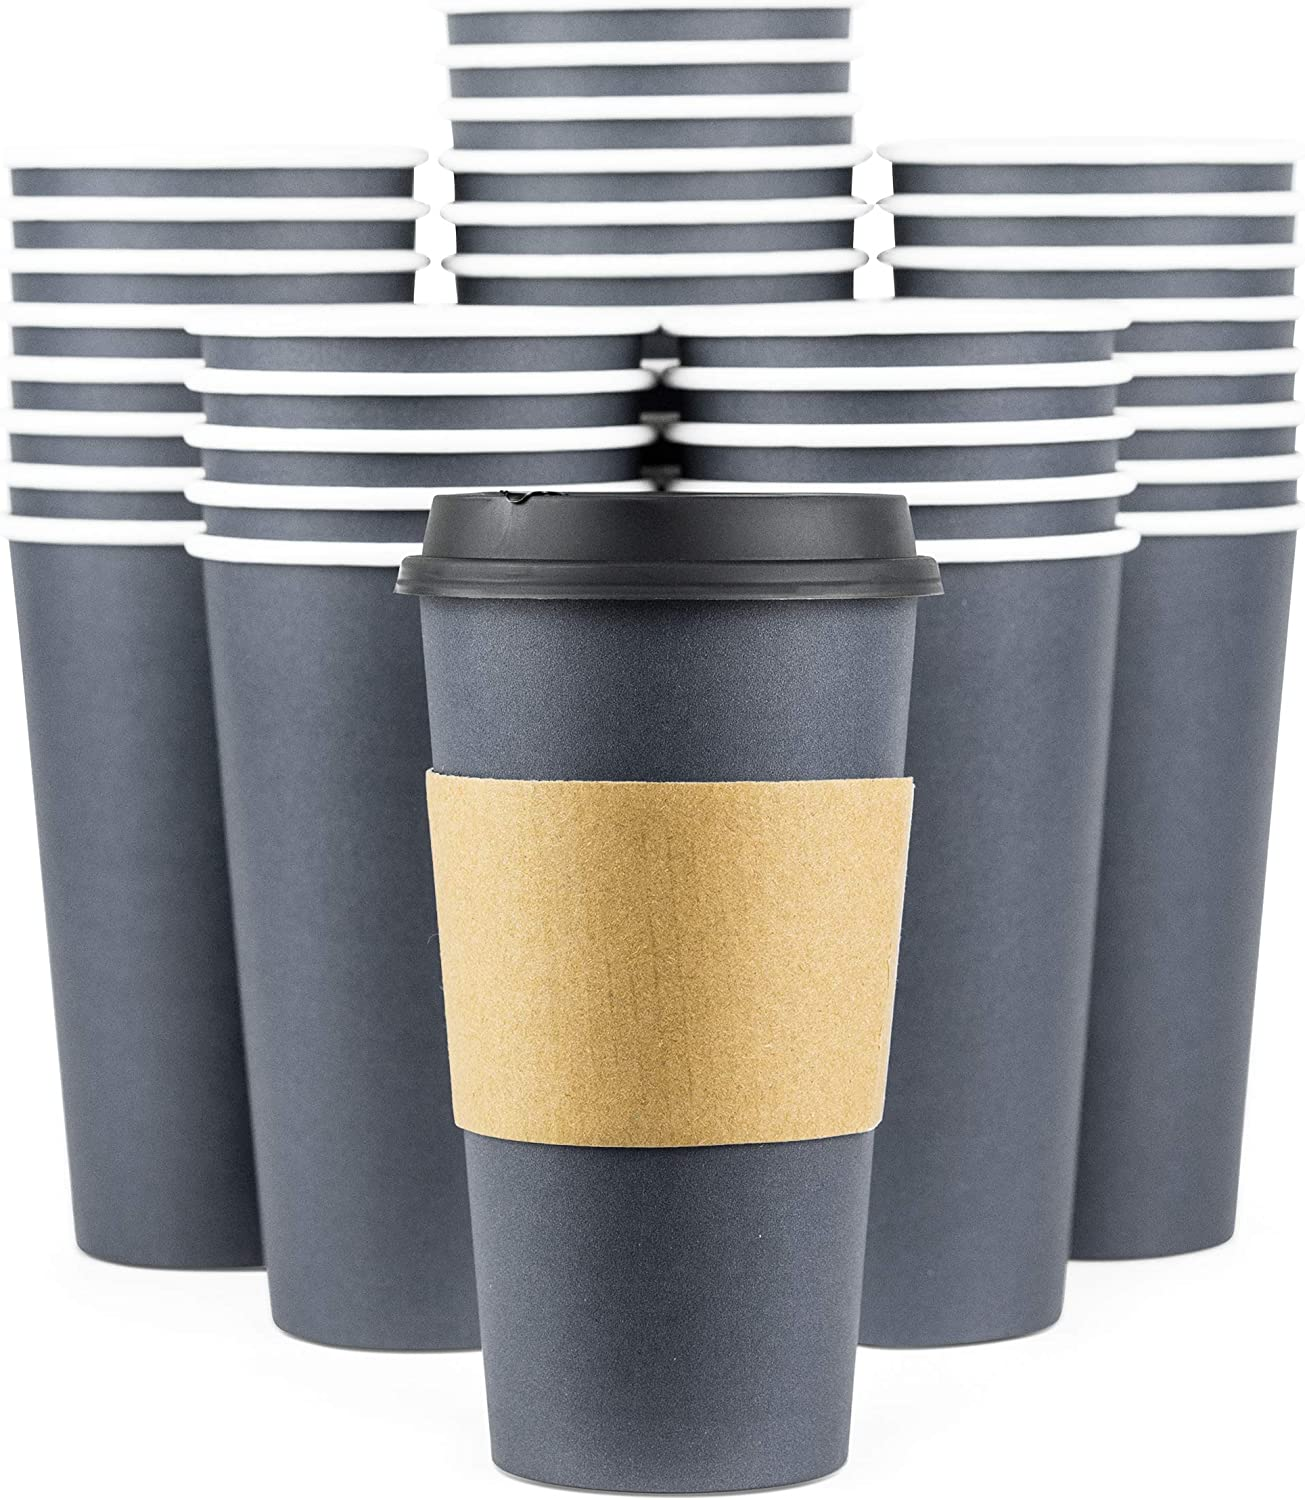 Glowcoast Disposable Coffee Cups With Lids - 20 oz To Go Coffee Cup With Lid (90 Set). Large Togo Travel Paper Hot Cups With Sleeves. Insulated For Hot and Cold Beverage Drinks (Dusk Grey)